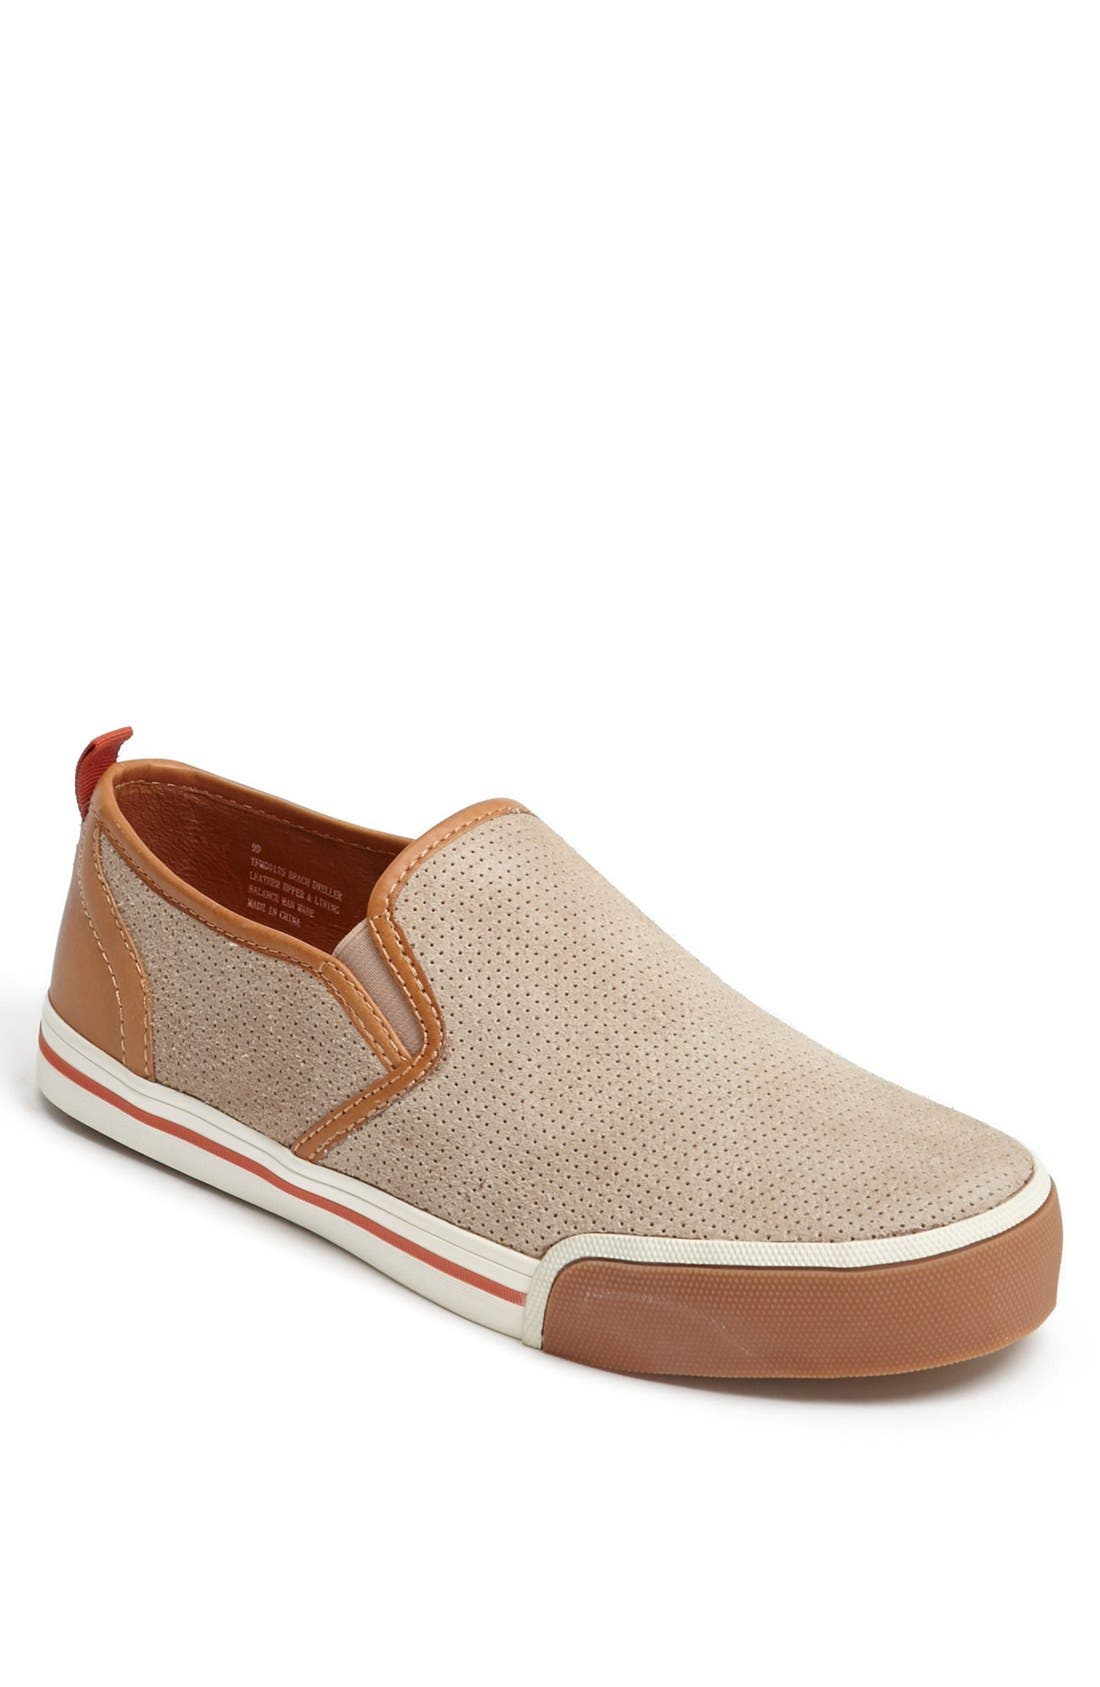 Alternate Image 1 Selected - Tommy Bahama 'Beach Dweller' Slip-On